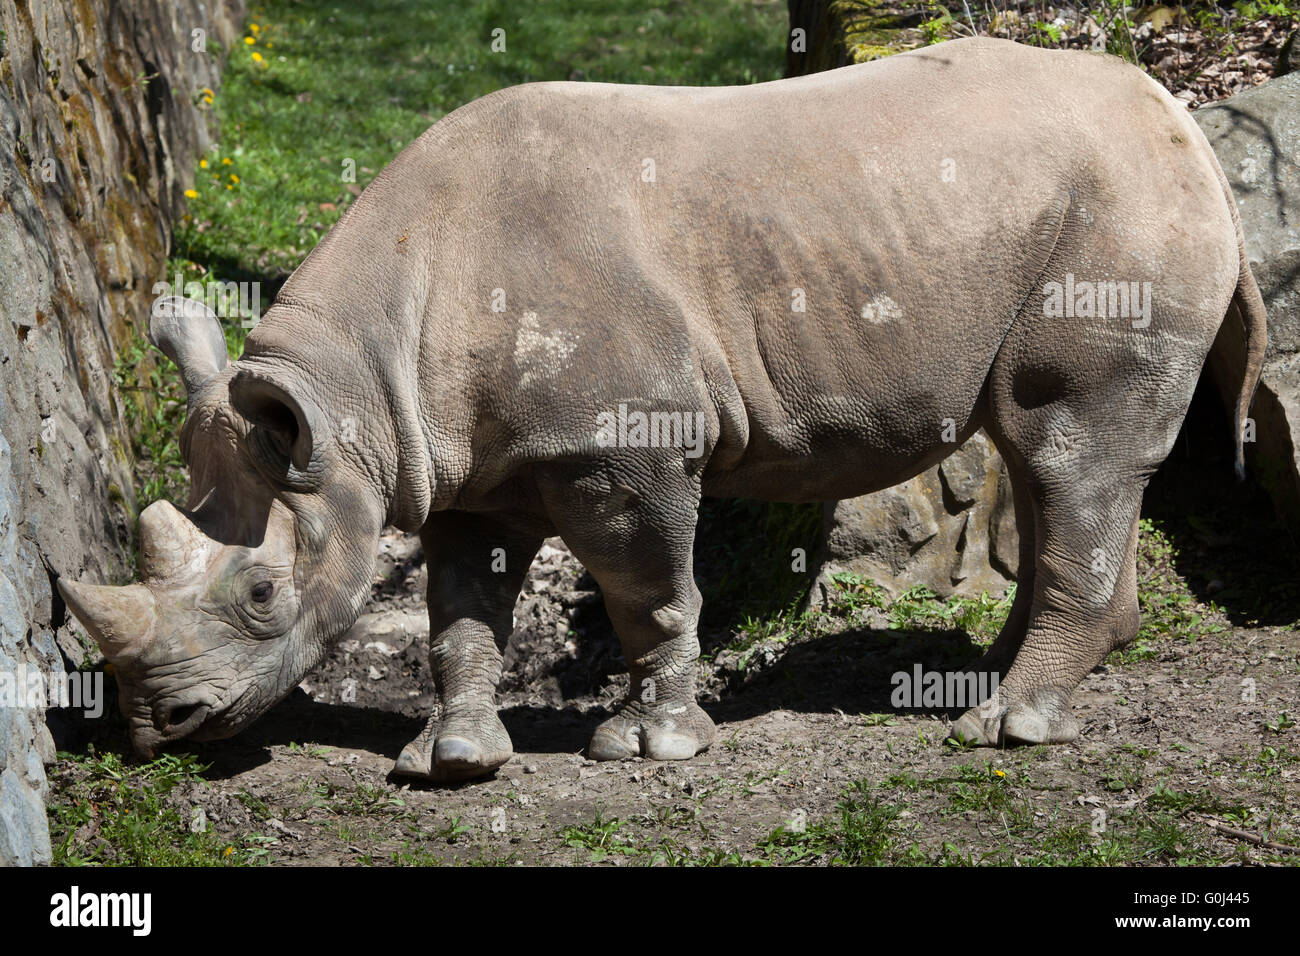 Black rhinoceros (Diceros bicornis) at Dvur Kralove Zoo, Czech Republic. - Stock Image